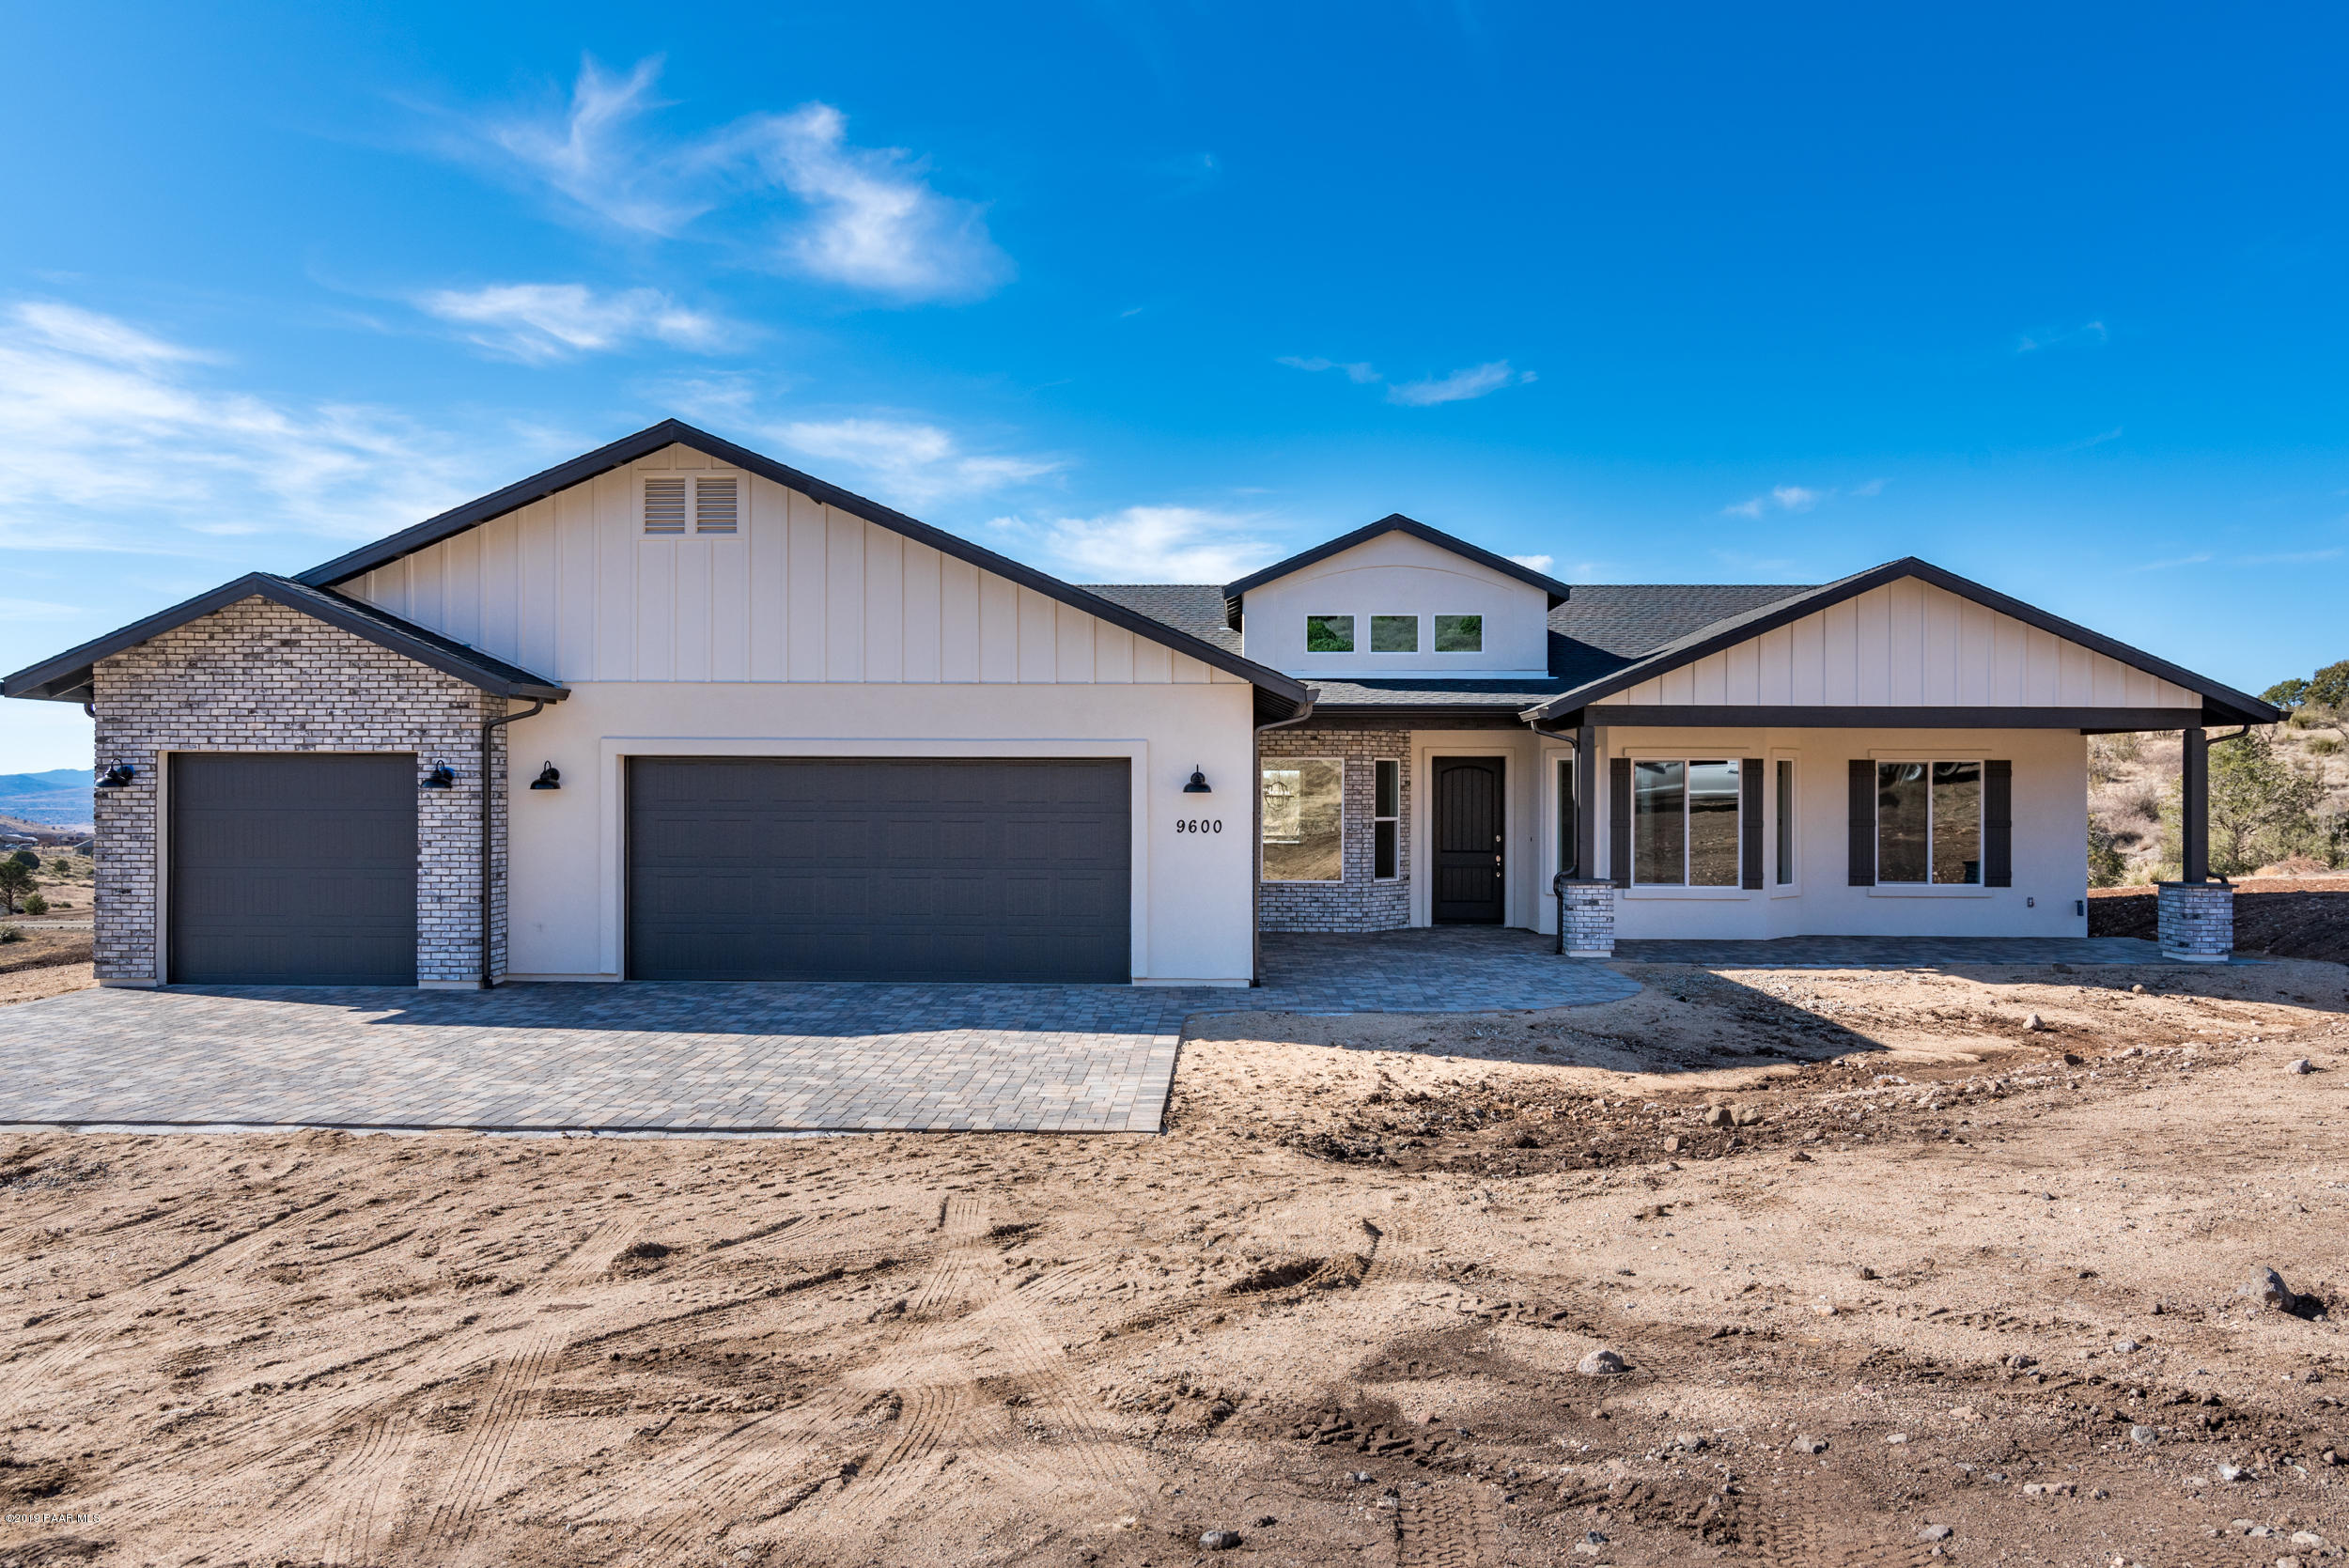 9600 N Drifter'S Trail, Prescott Valley, Arizona